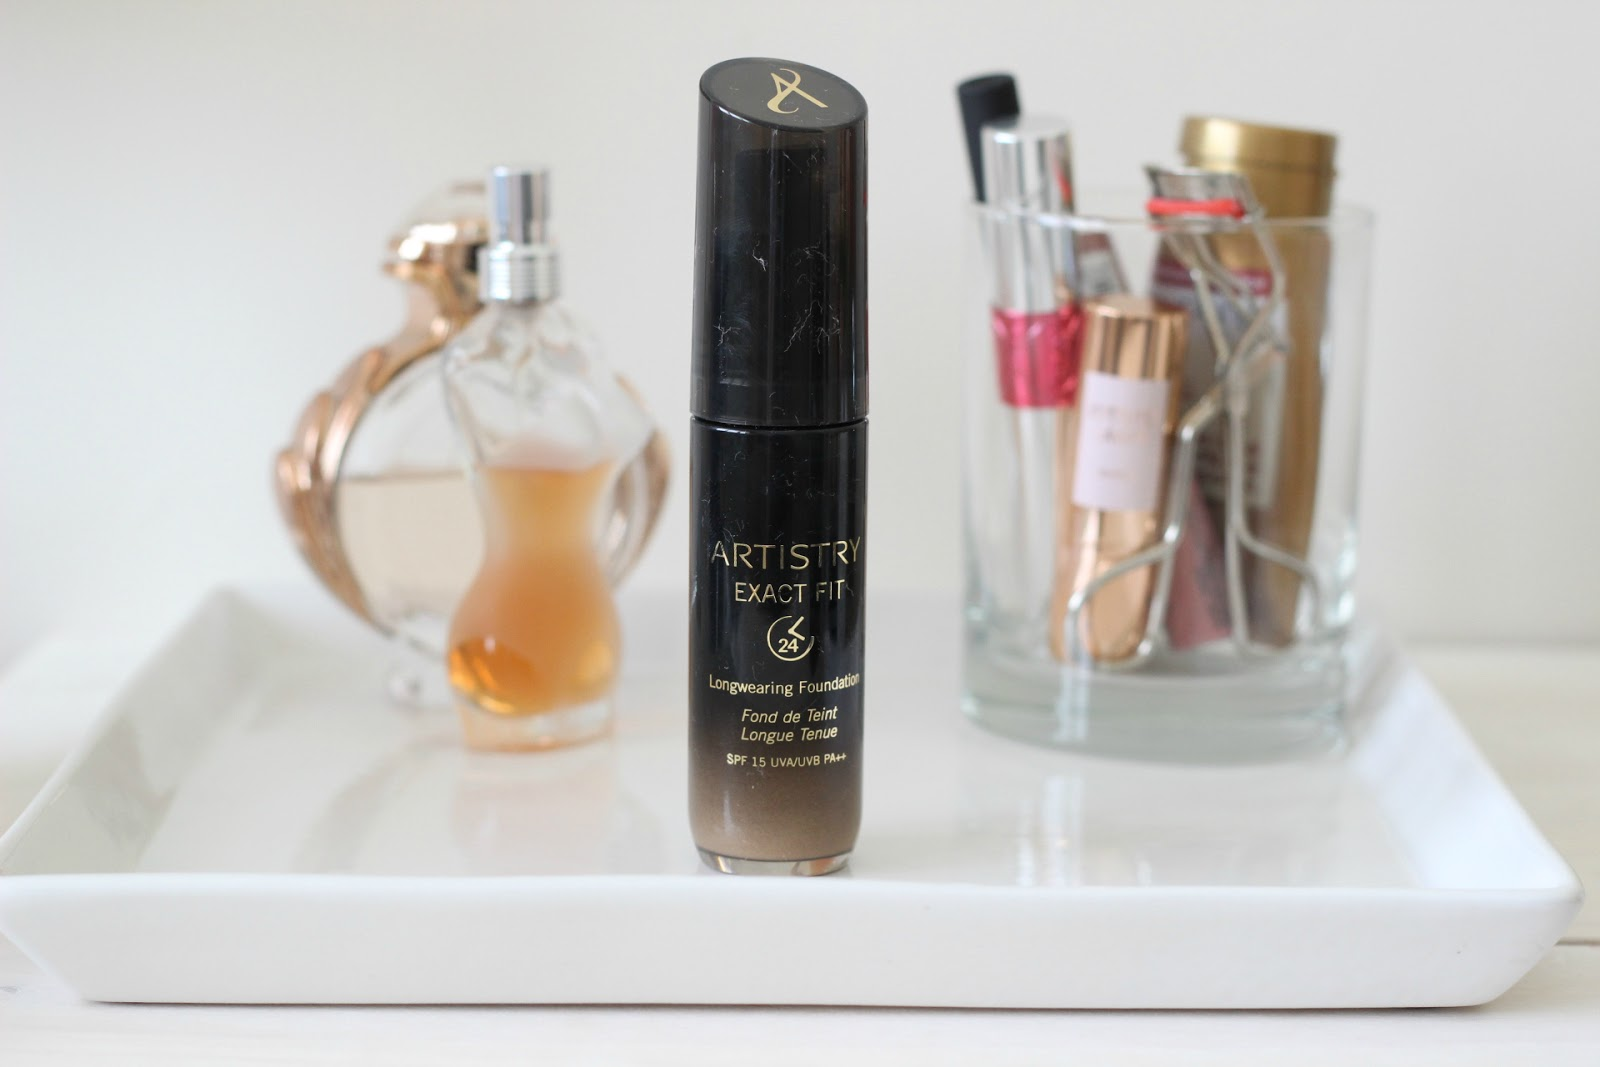 Artistry Exact Fit Foundation